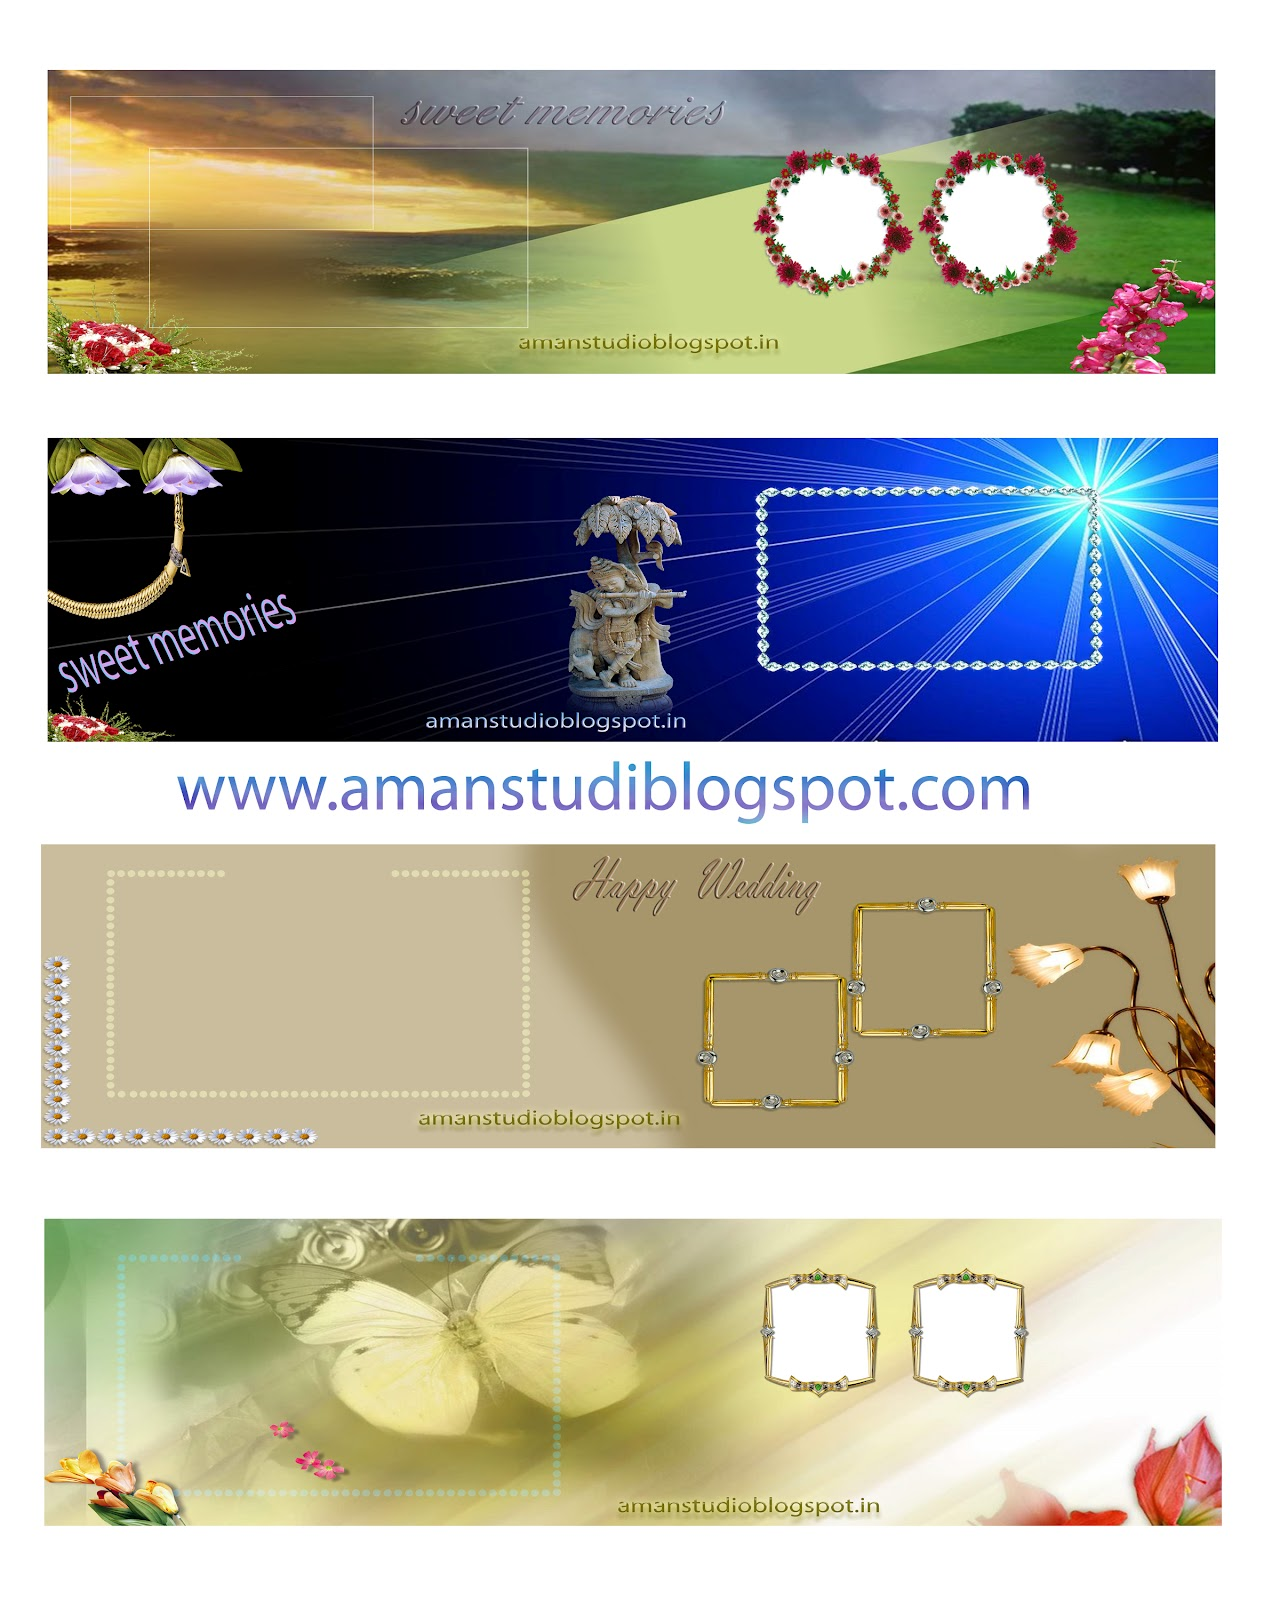 Wedding Album Design Software Digital Photography Free Download: Aman Studio: KARIZMA DESIGN